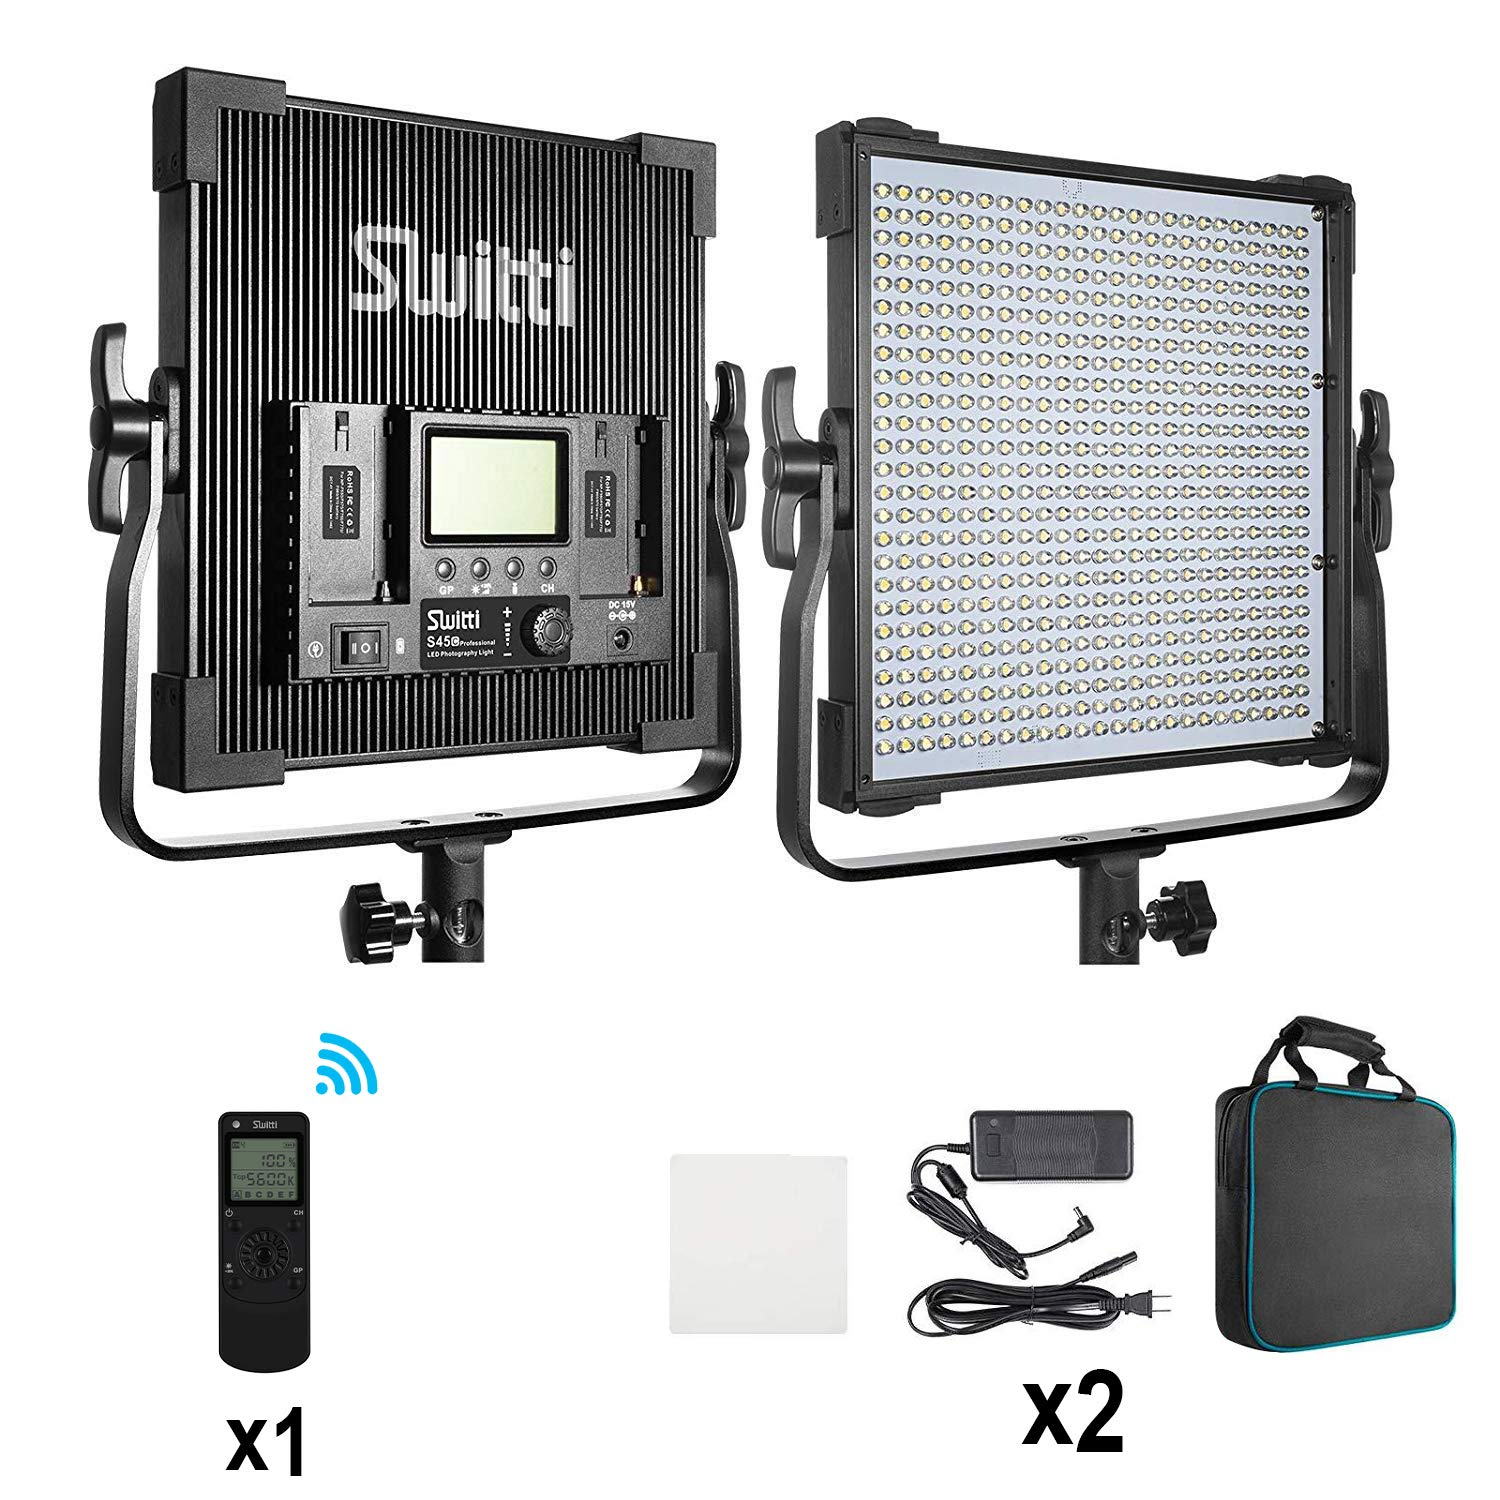 Bi-Color LED Video Light 45W, Switti Studio Lights with Digital Display CRI96+, LED Photography Video Lighting Kit 3000K-8000K for Studio YouTube Product Photography Video Shoot(2 Packs, RC Included)